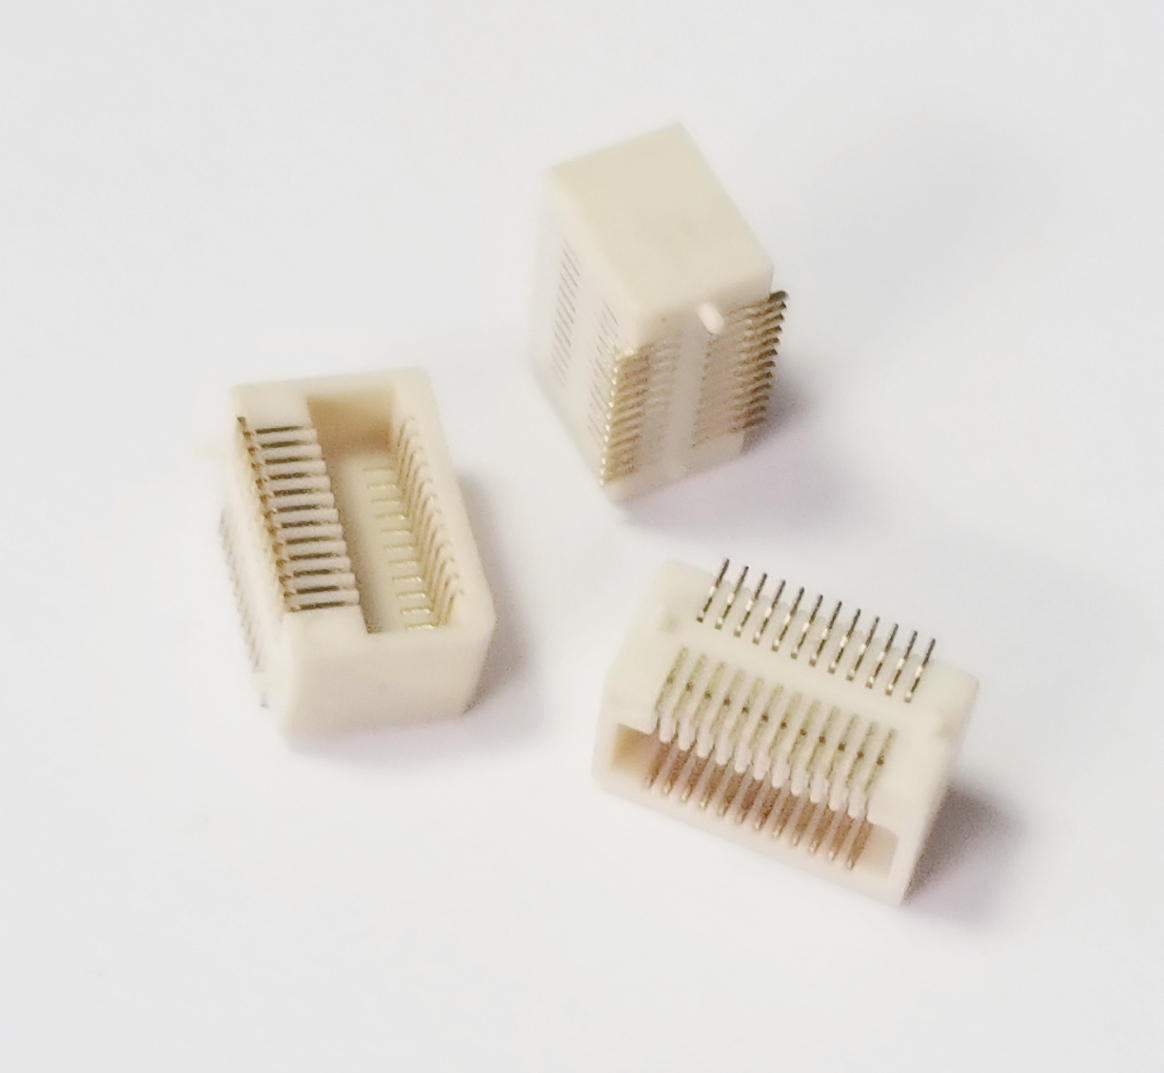 Micro Pitch Interconnect Socket - MPBR1